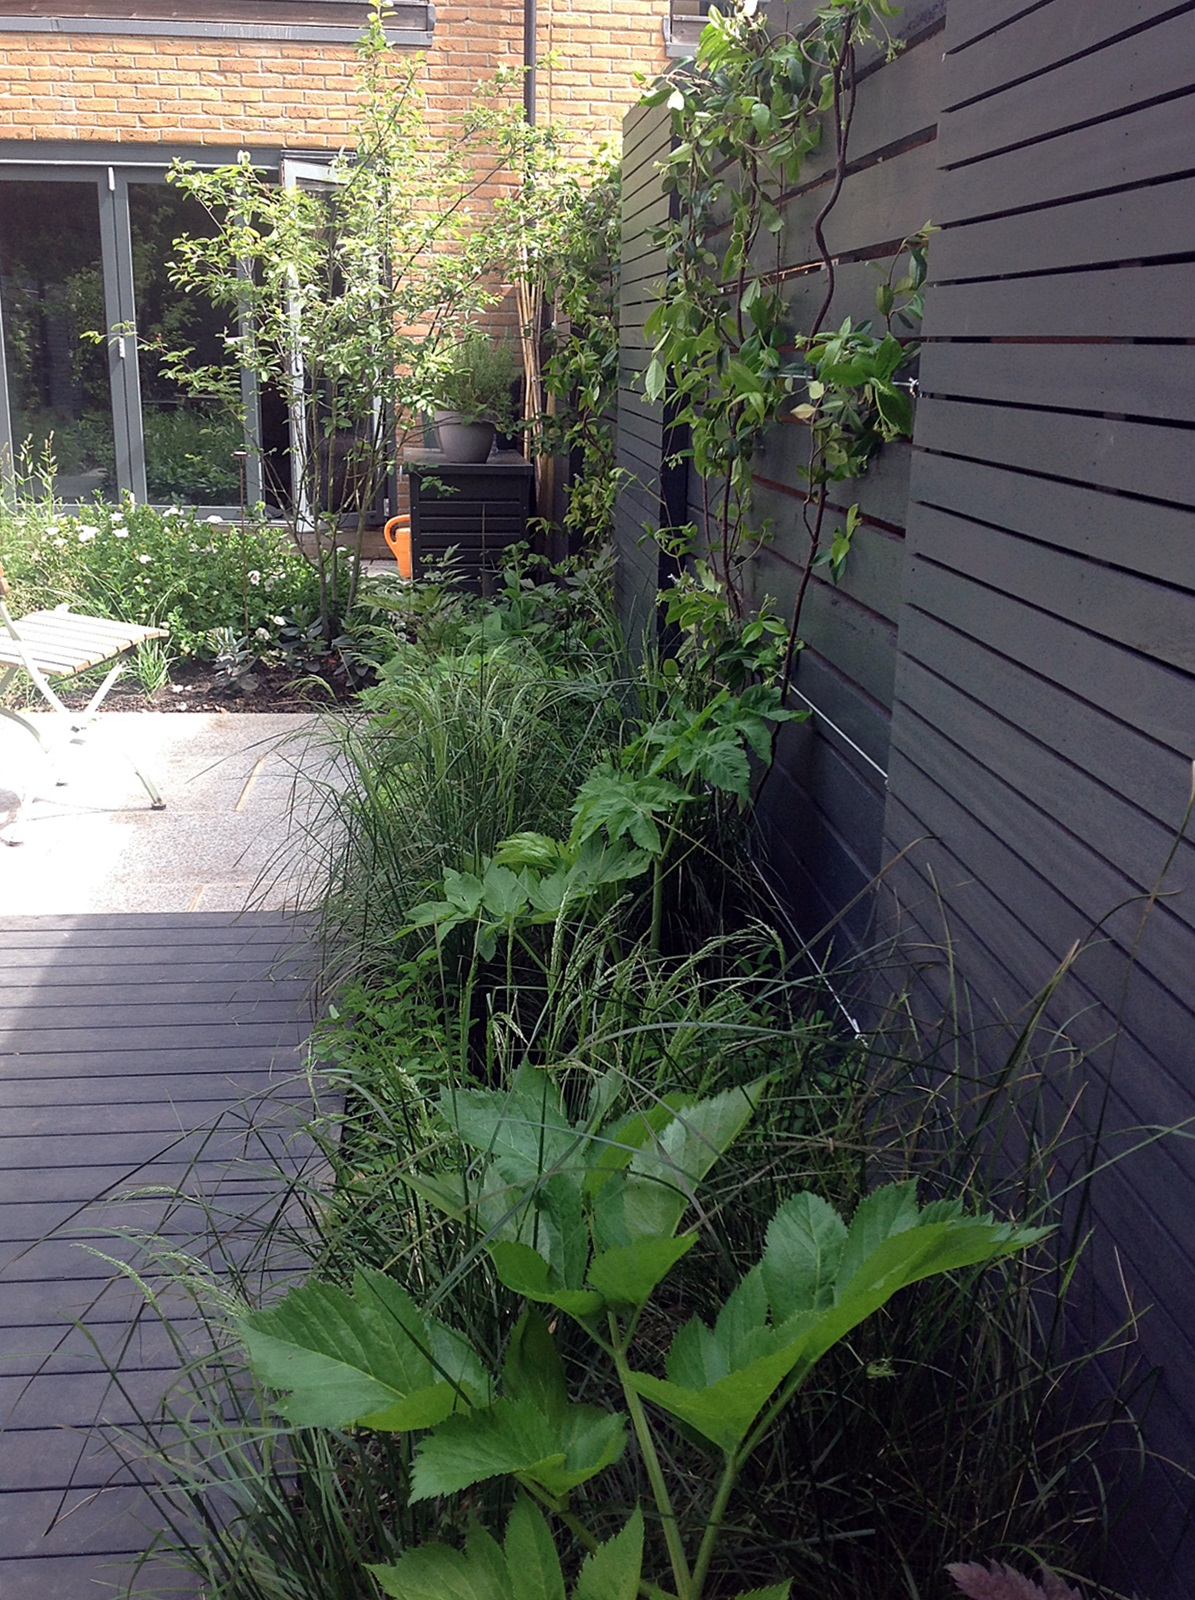 Grey and black garden design peckham battersea dulwich clapham london